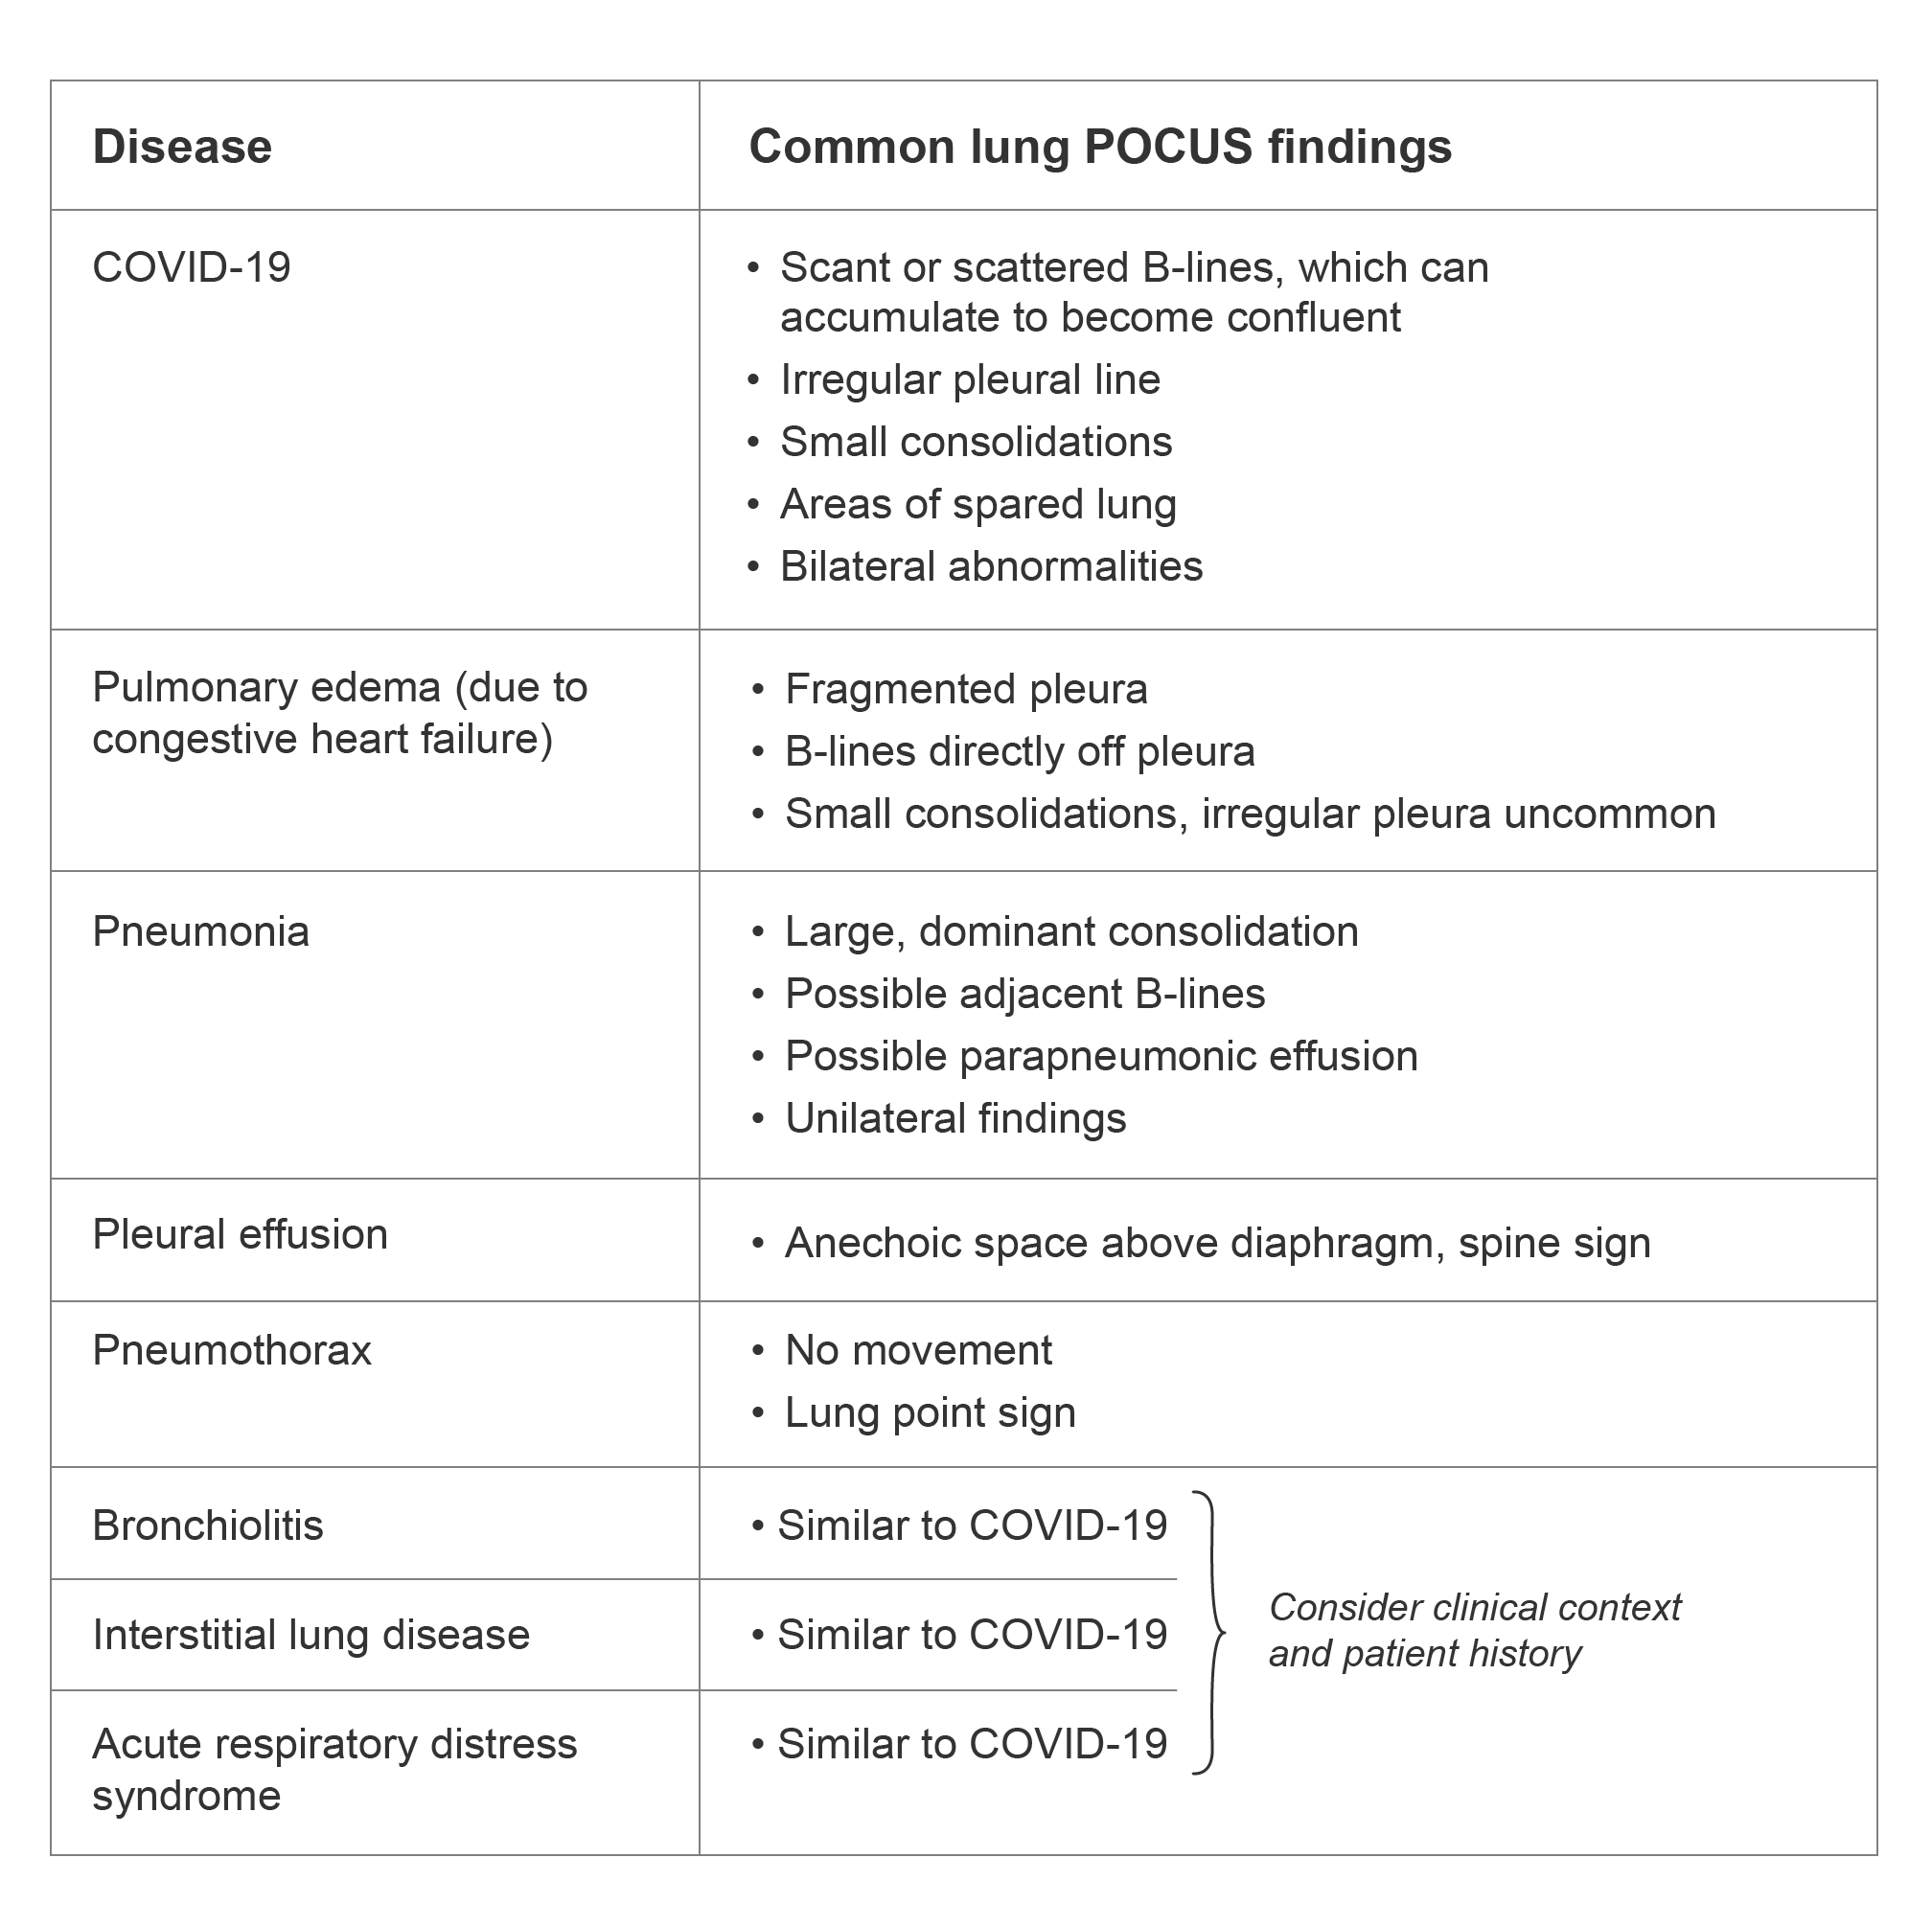 Table of common lung point-of-care ultrasound (POCUS) findings for COVID-19, pulmonary edema, pneumonia, pleural effusion, pneumothorax, bronchiolitis, interstitial lung disease, and acute respiratory distress syndrome (ARDS).